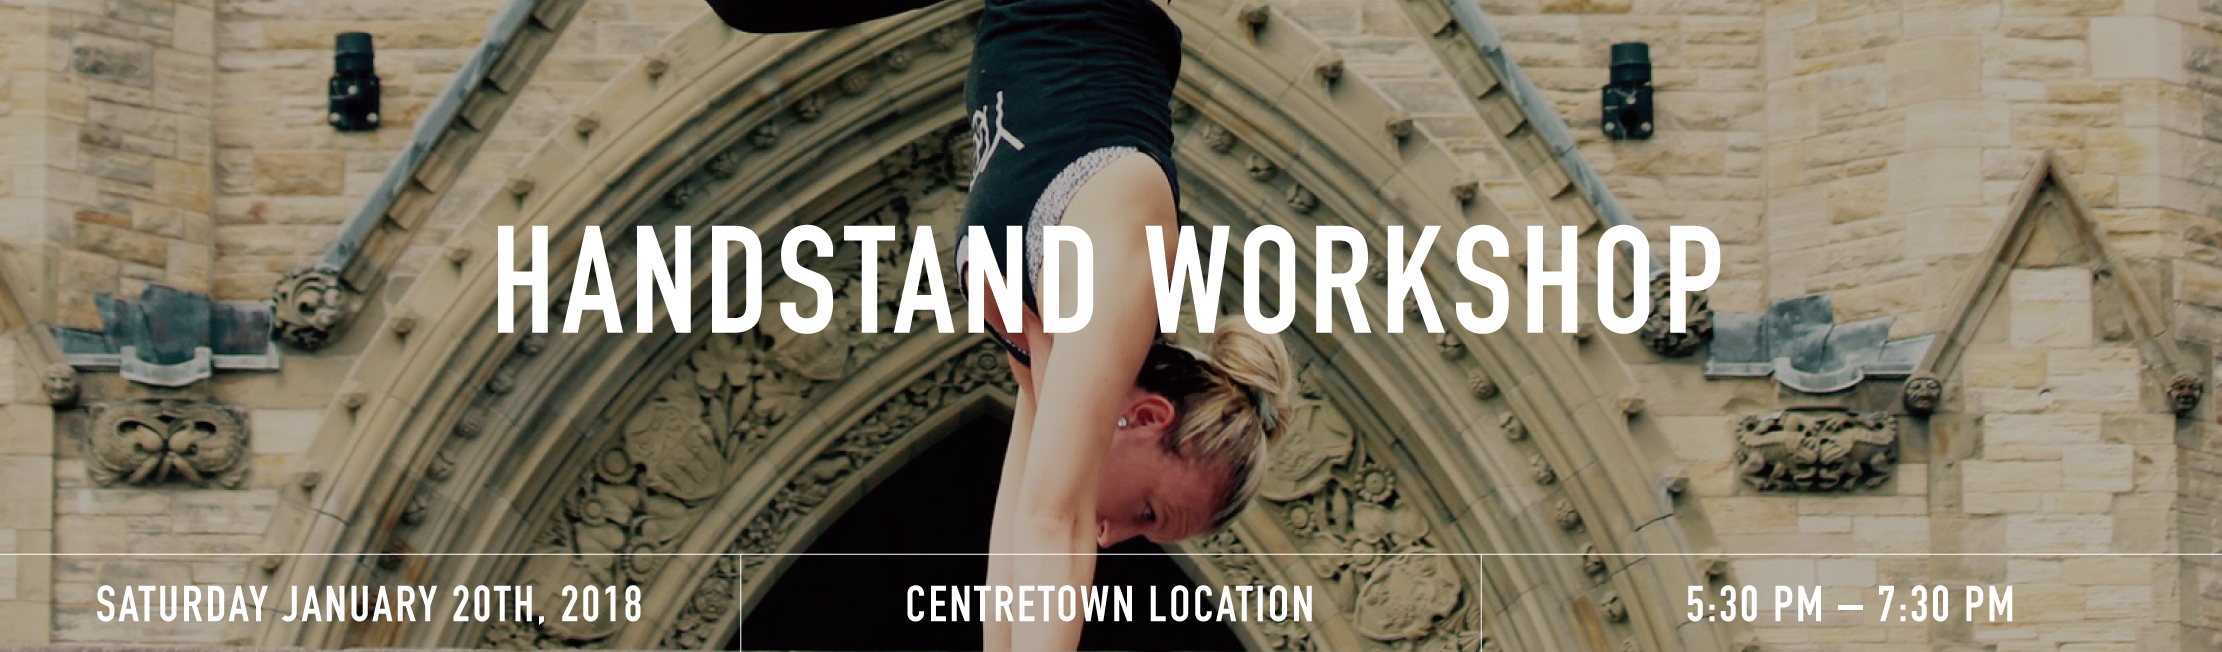 Handstand workshop banner  8